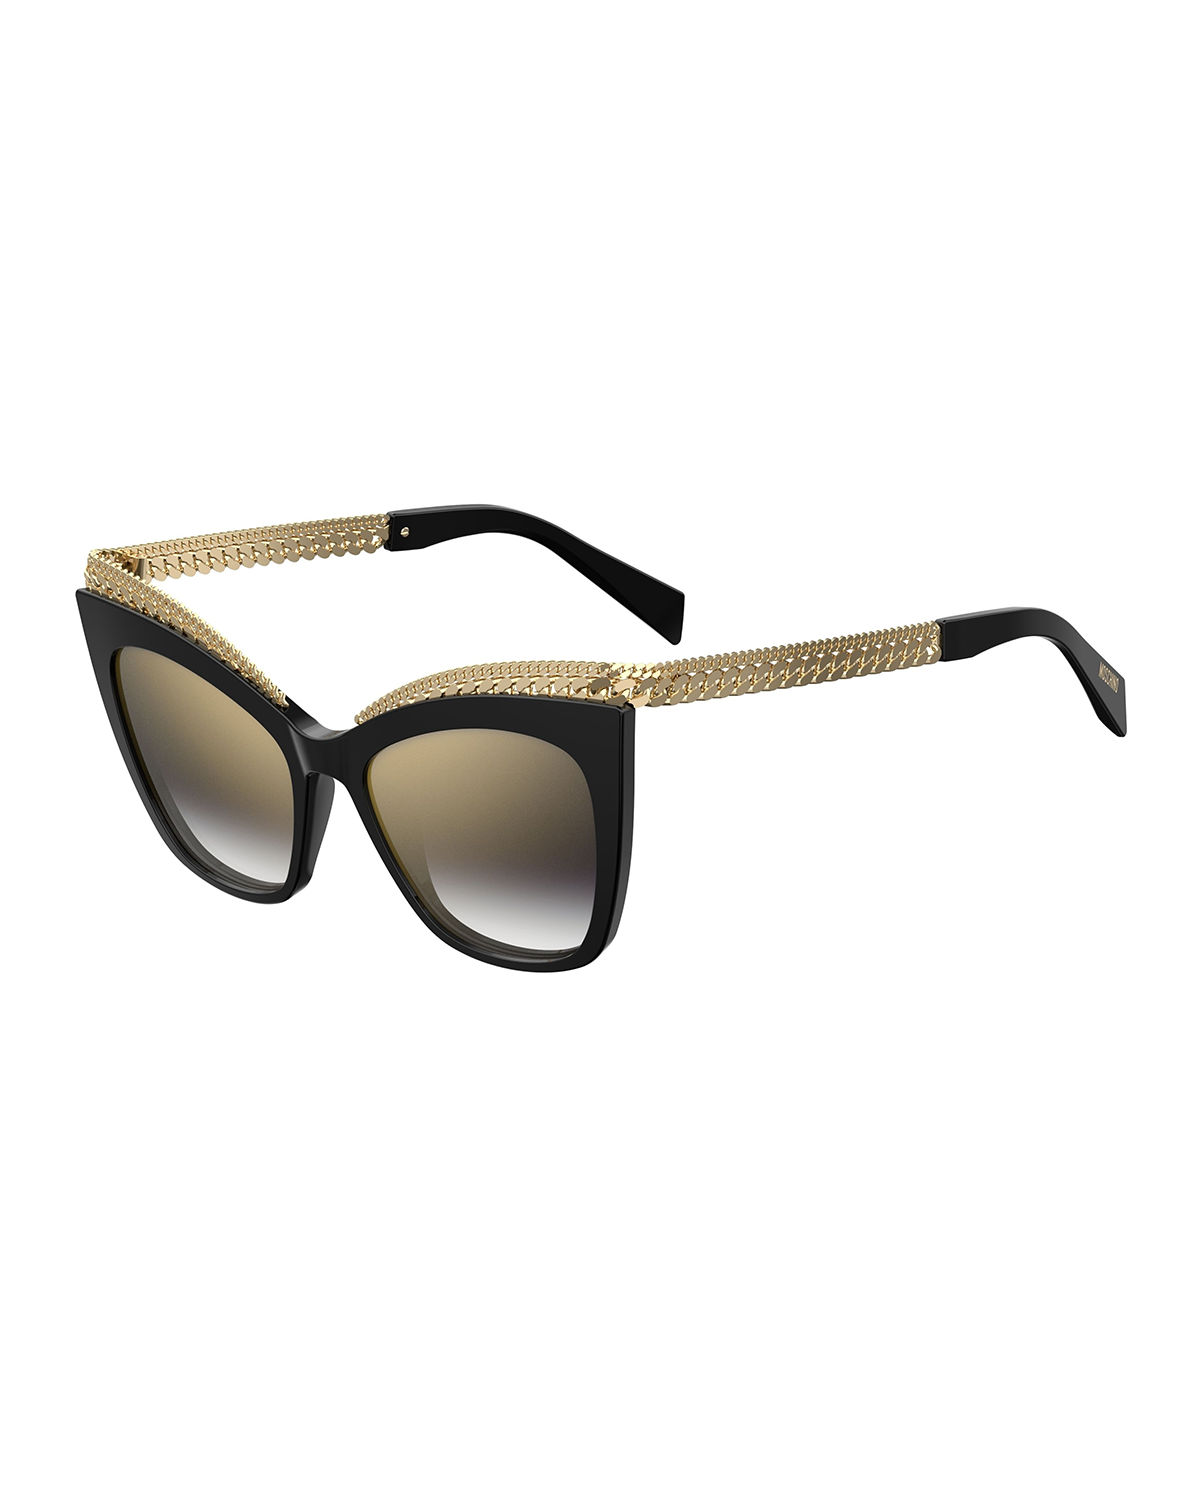 Mirrored Cat-Eye Sunglasses w/ Metal Curb Chain Arms